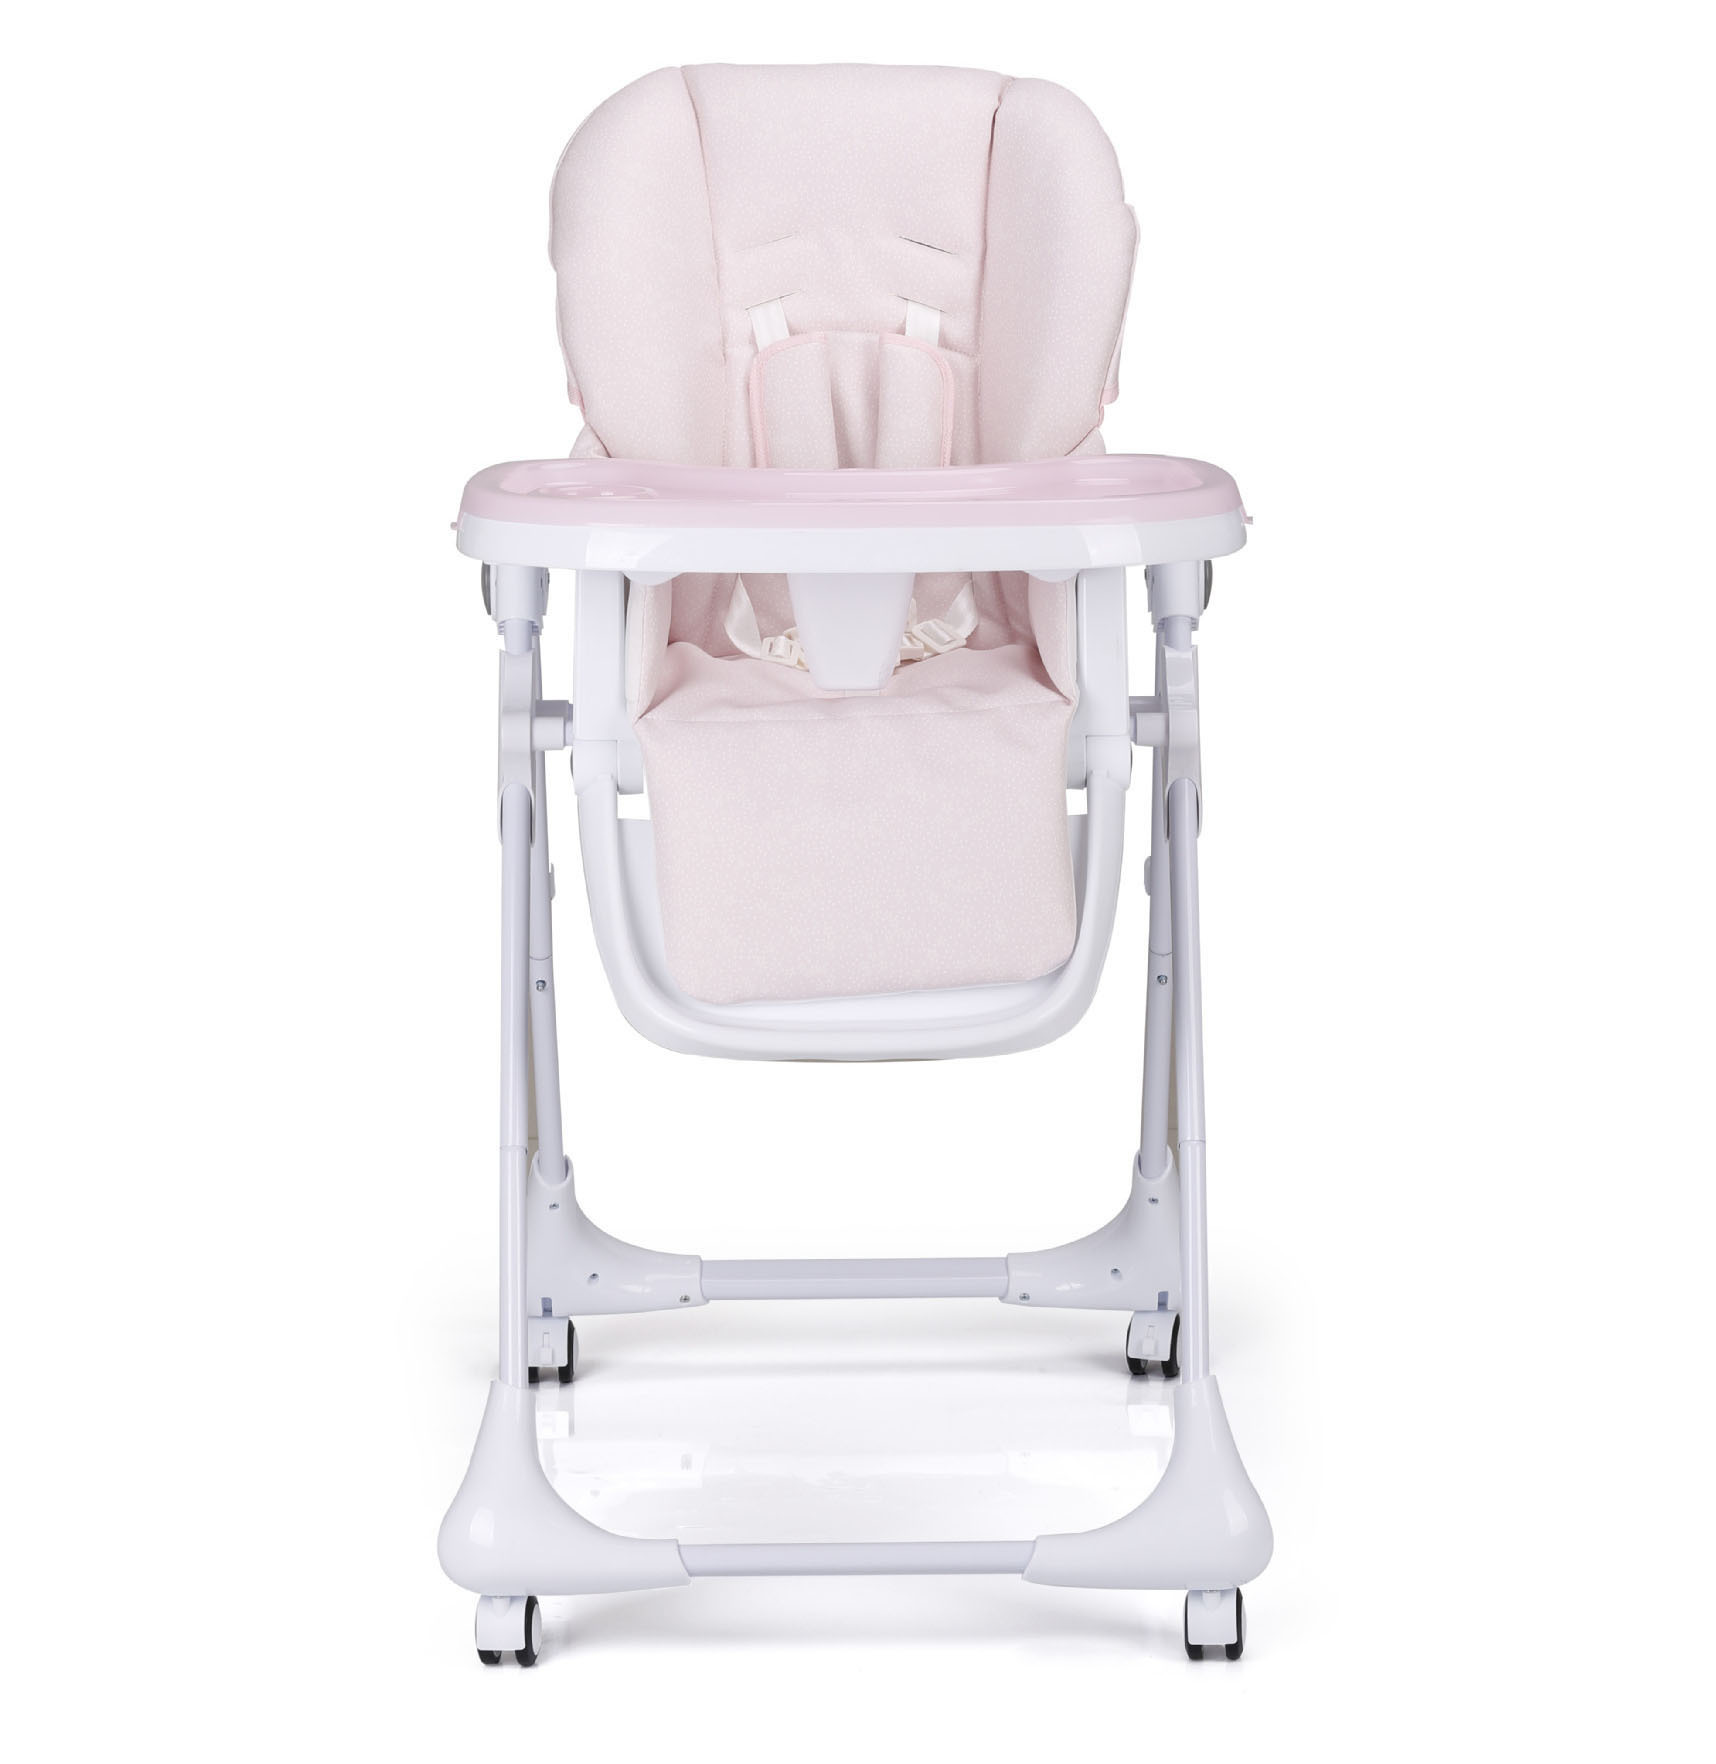 New high chair from birth adjustable Suppliers for older baby